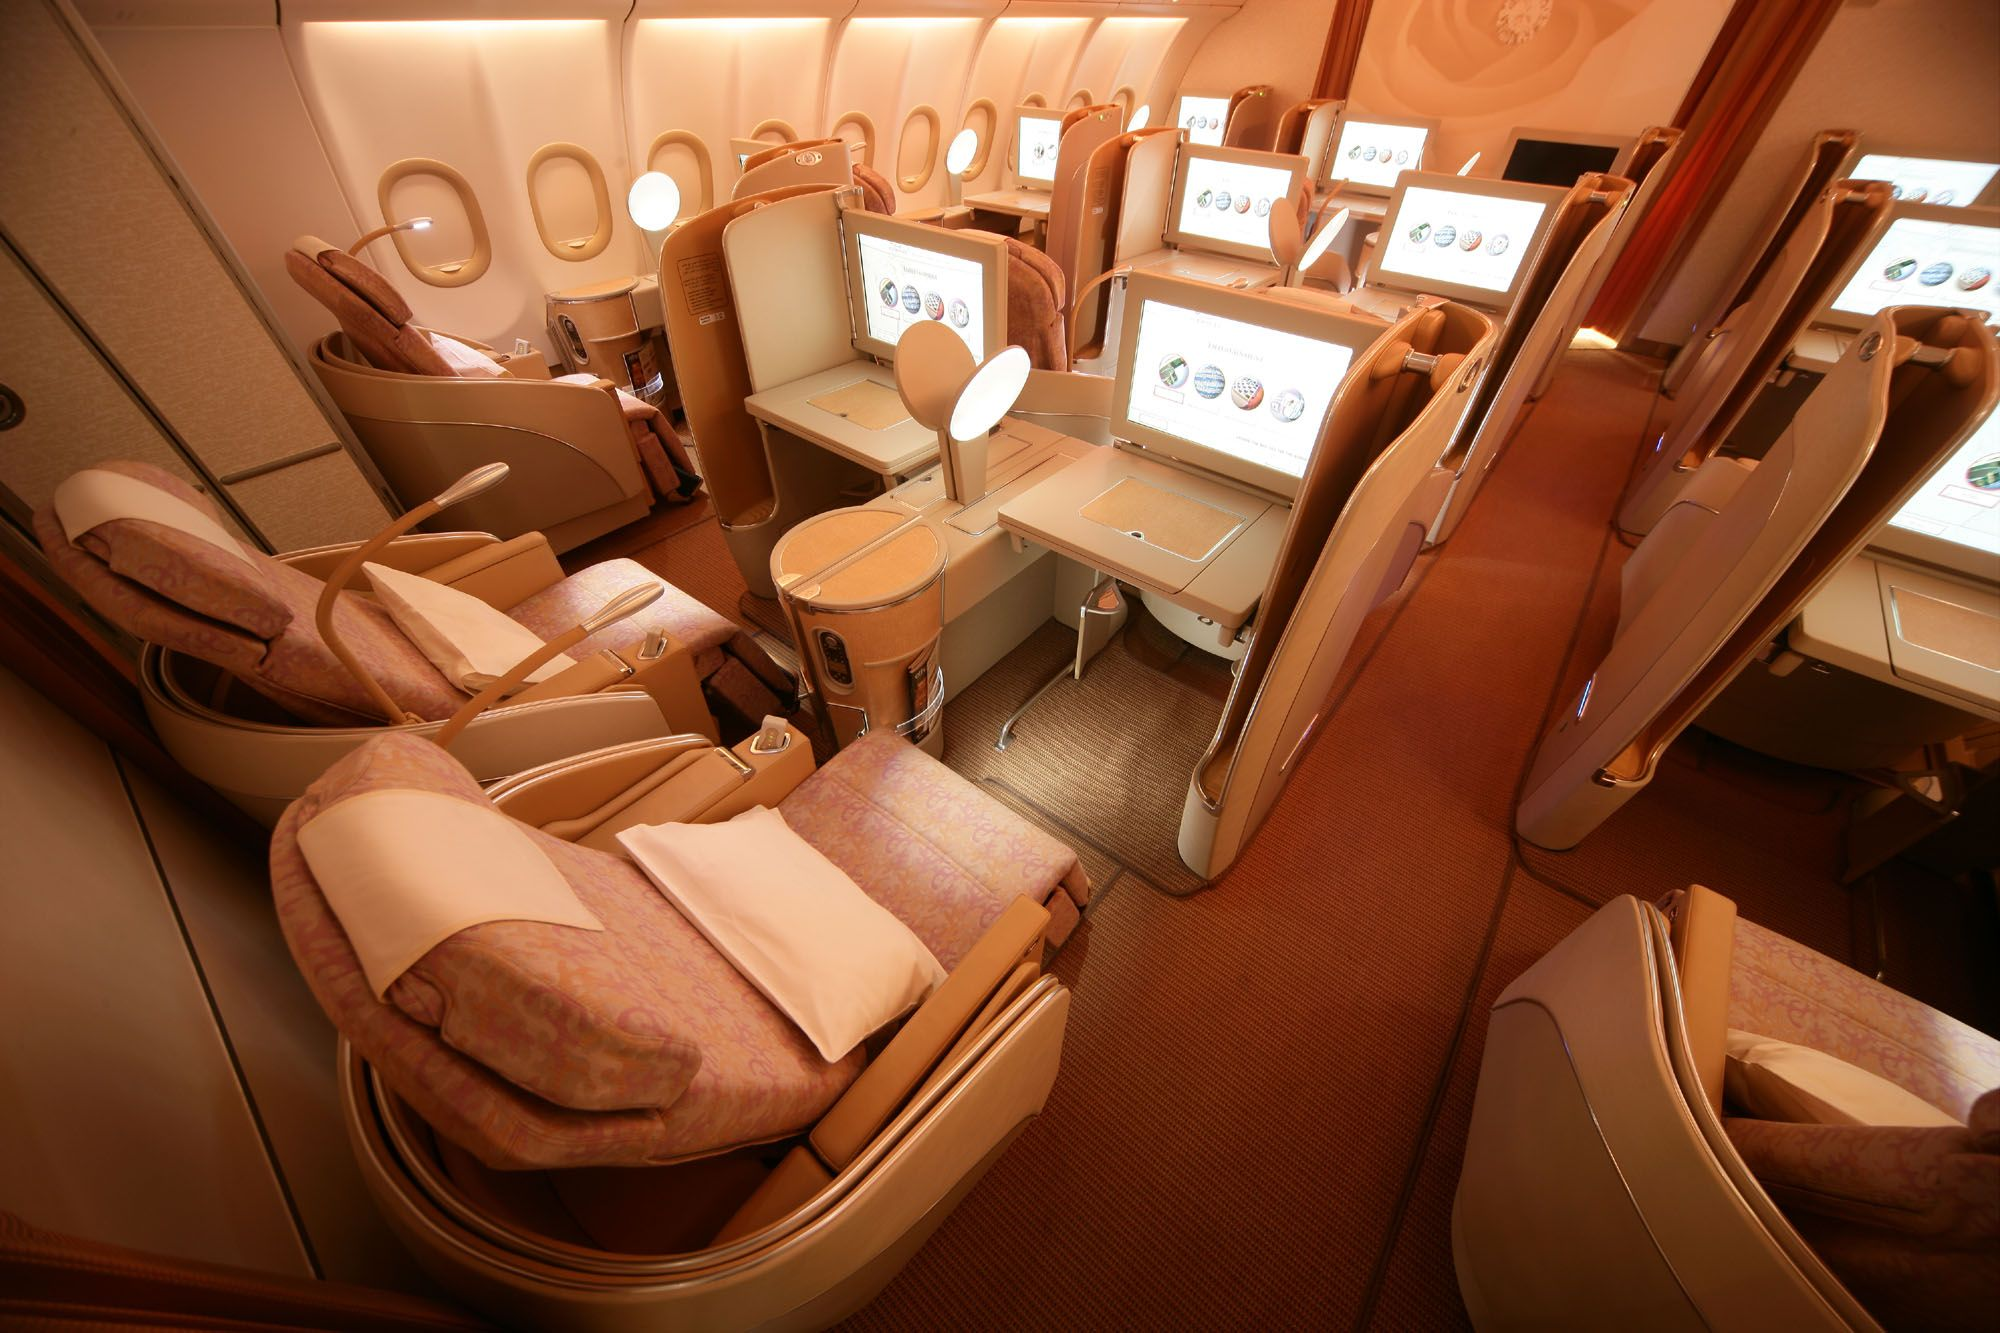 Swanky Aircraft Interiors With Images Business Class Flight